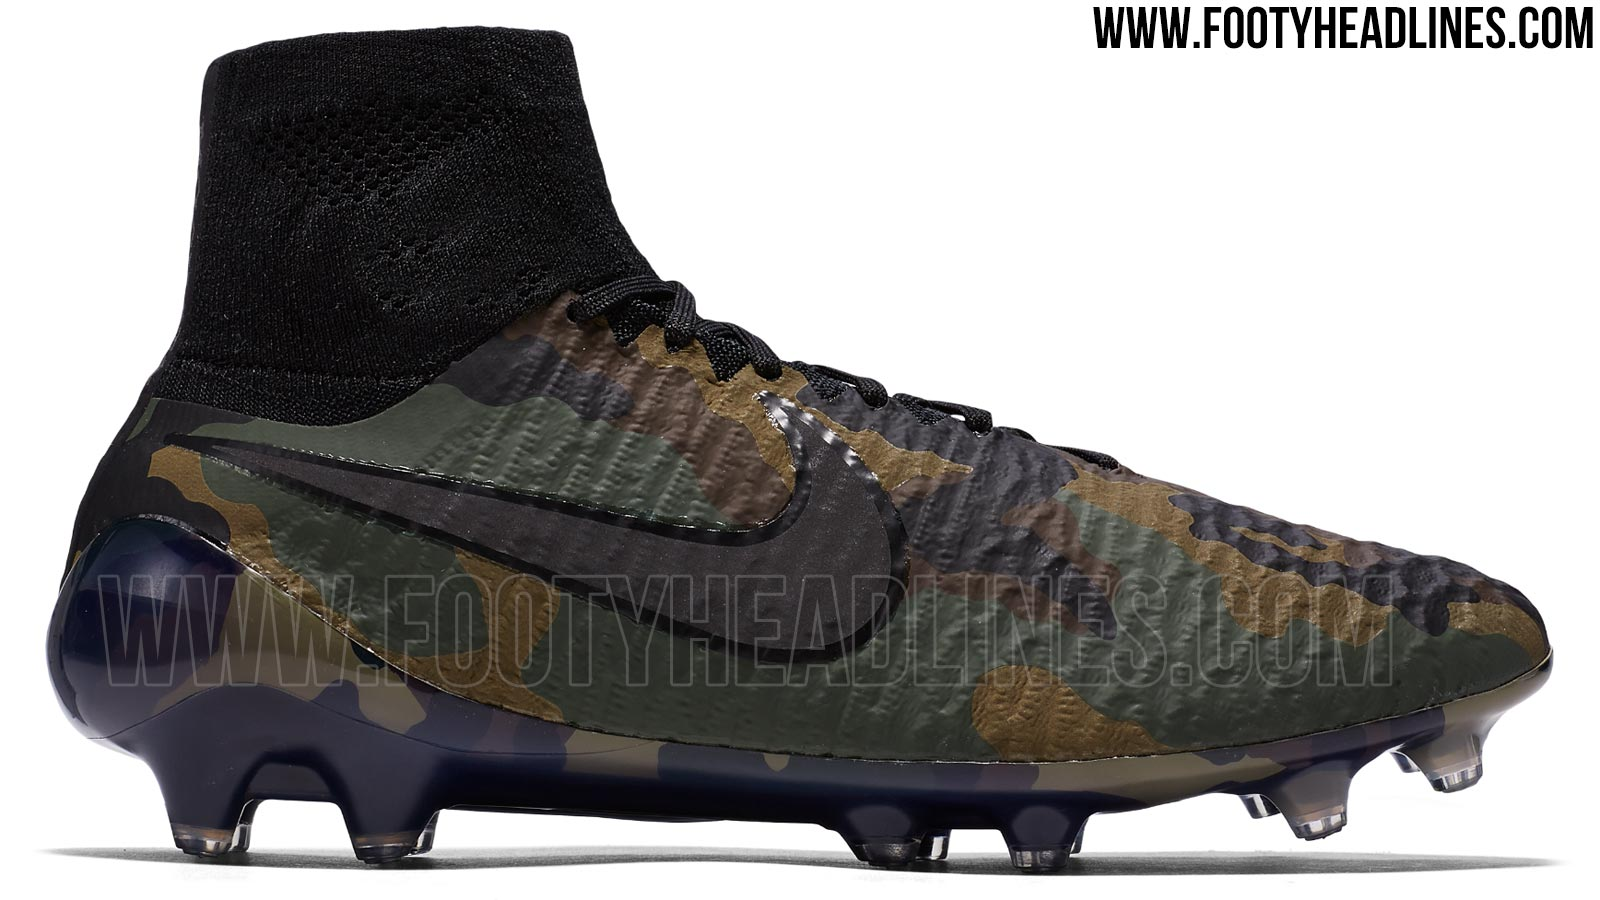 nike magista obra camo 2016 boots revealed footy headlines. Black Bedroom Furniture Sets. Home Design Ideas